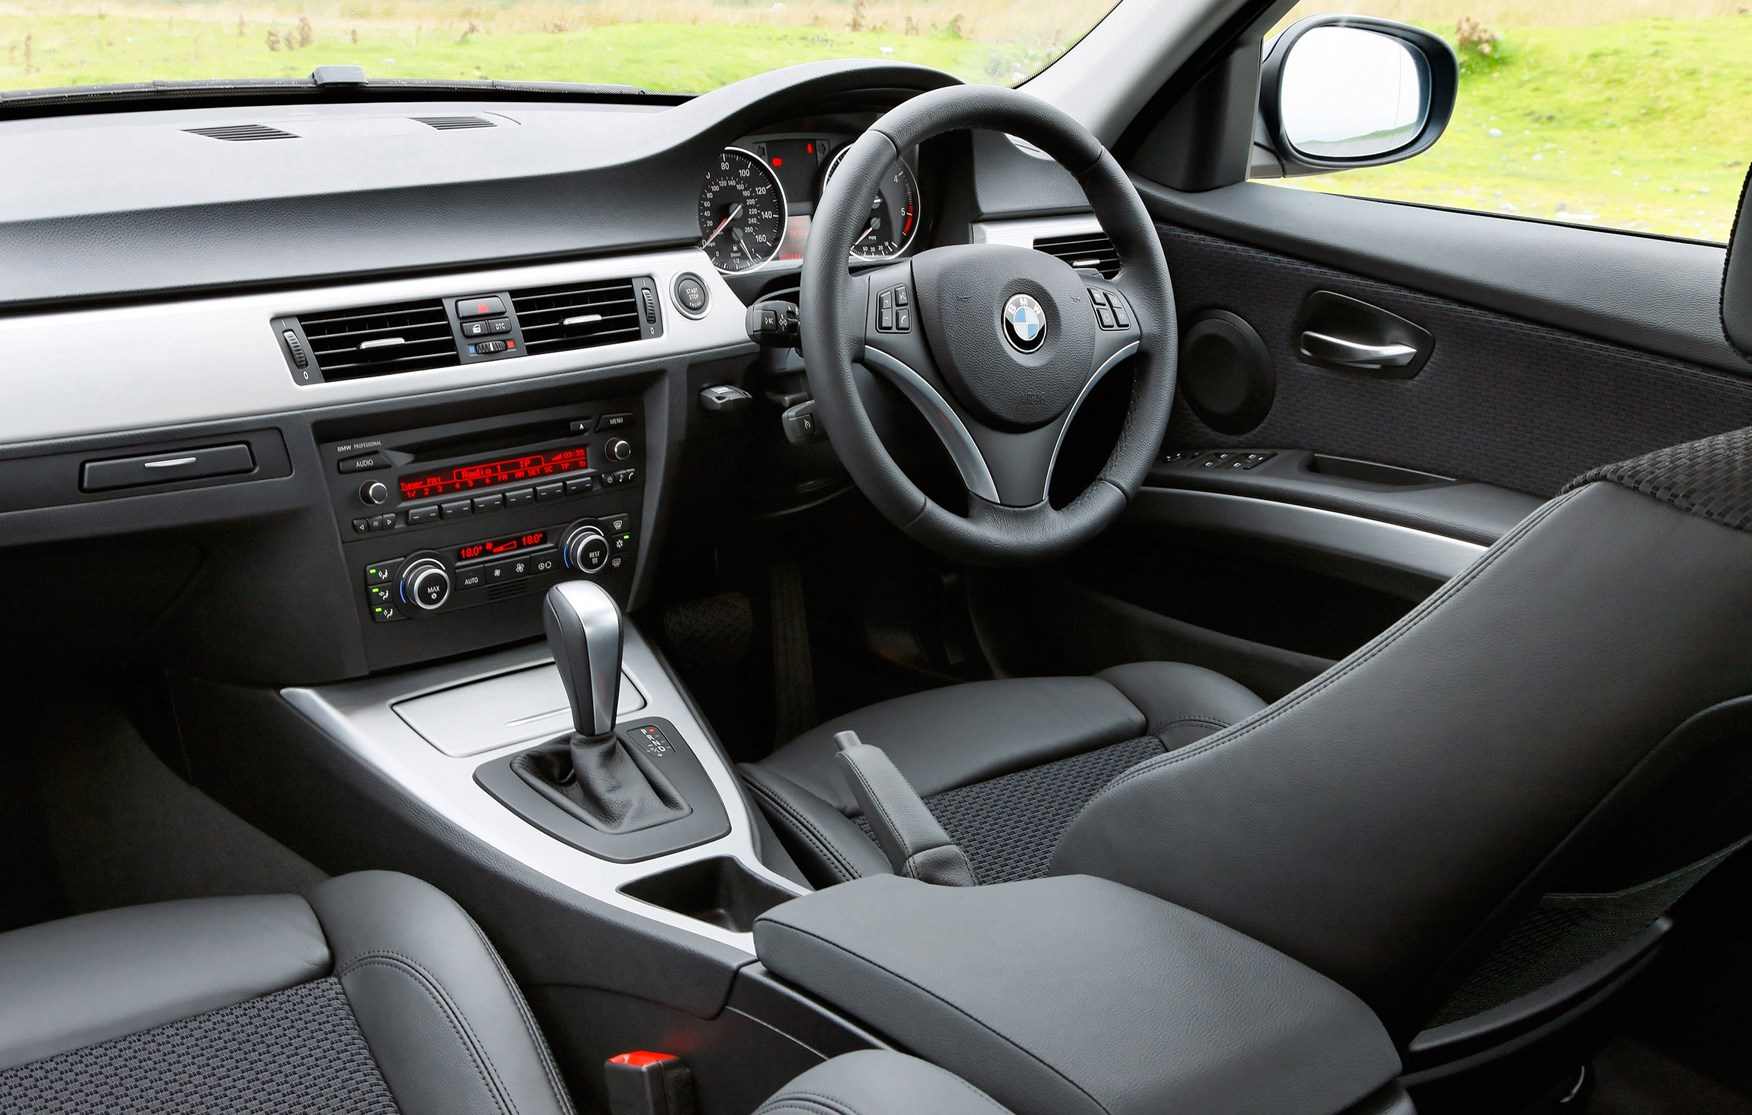 Car models com 2012 bmw 3 series - View All Images Of The Bmw 3 Series Saloon 05 11